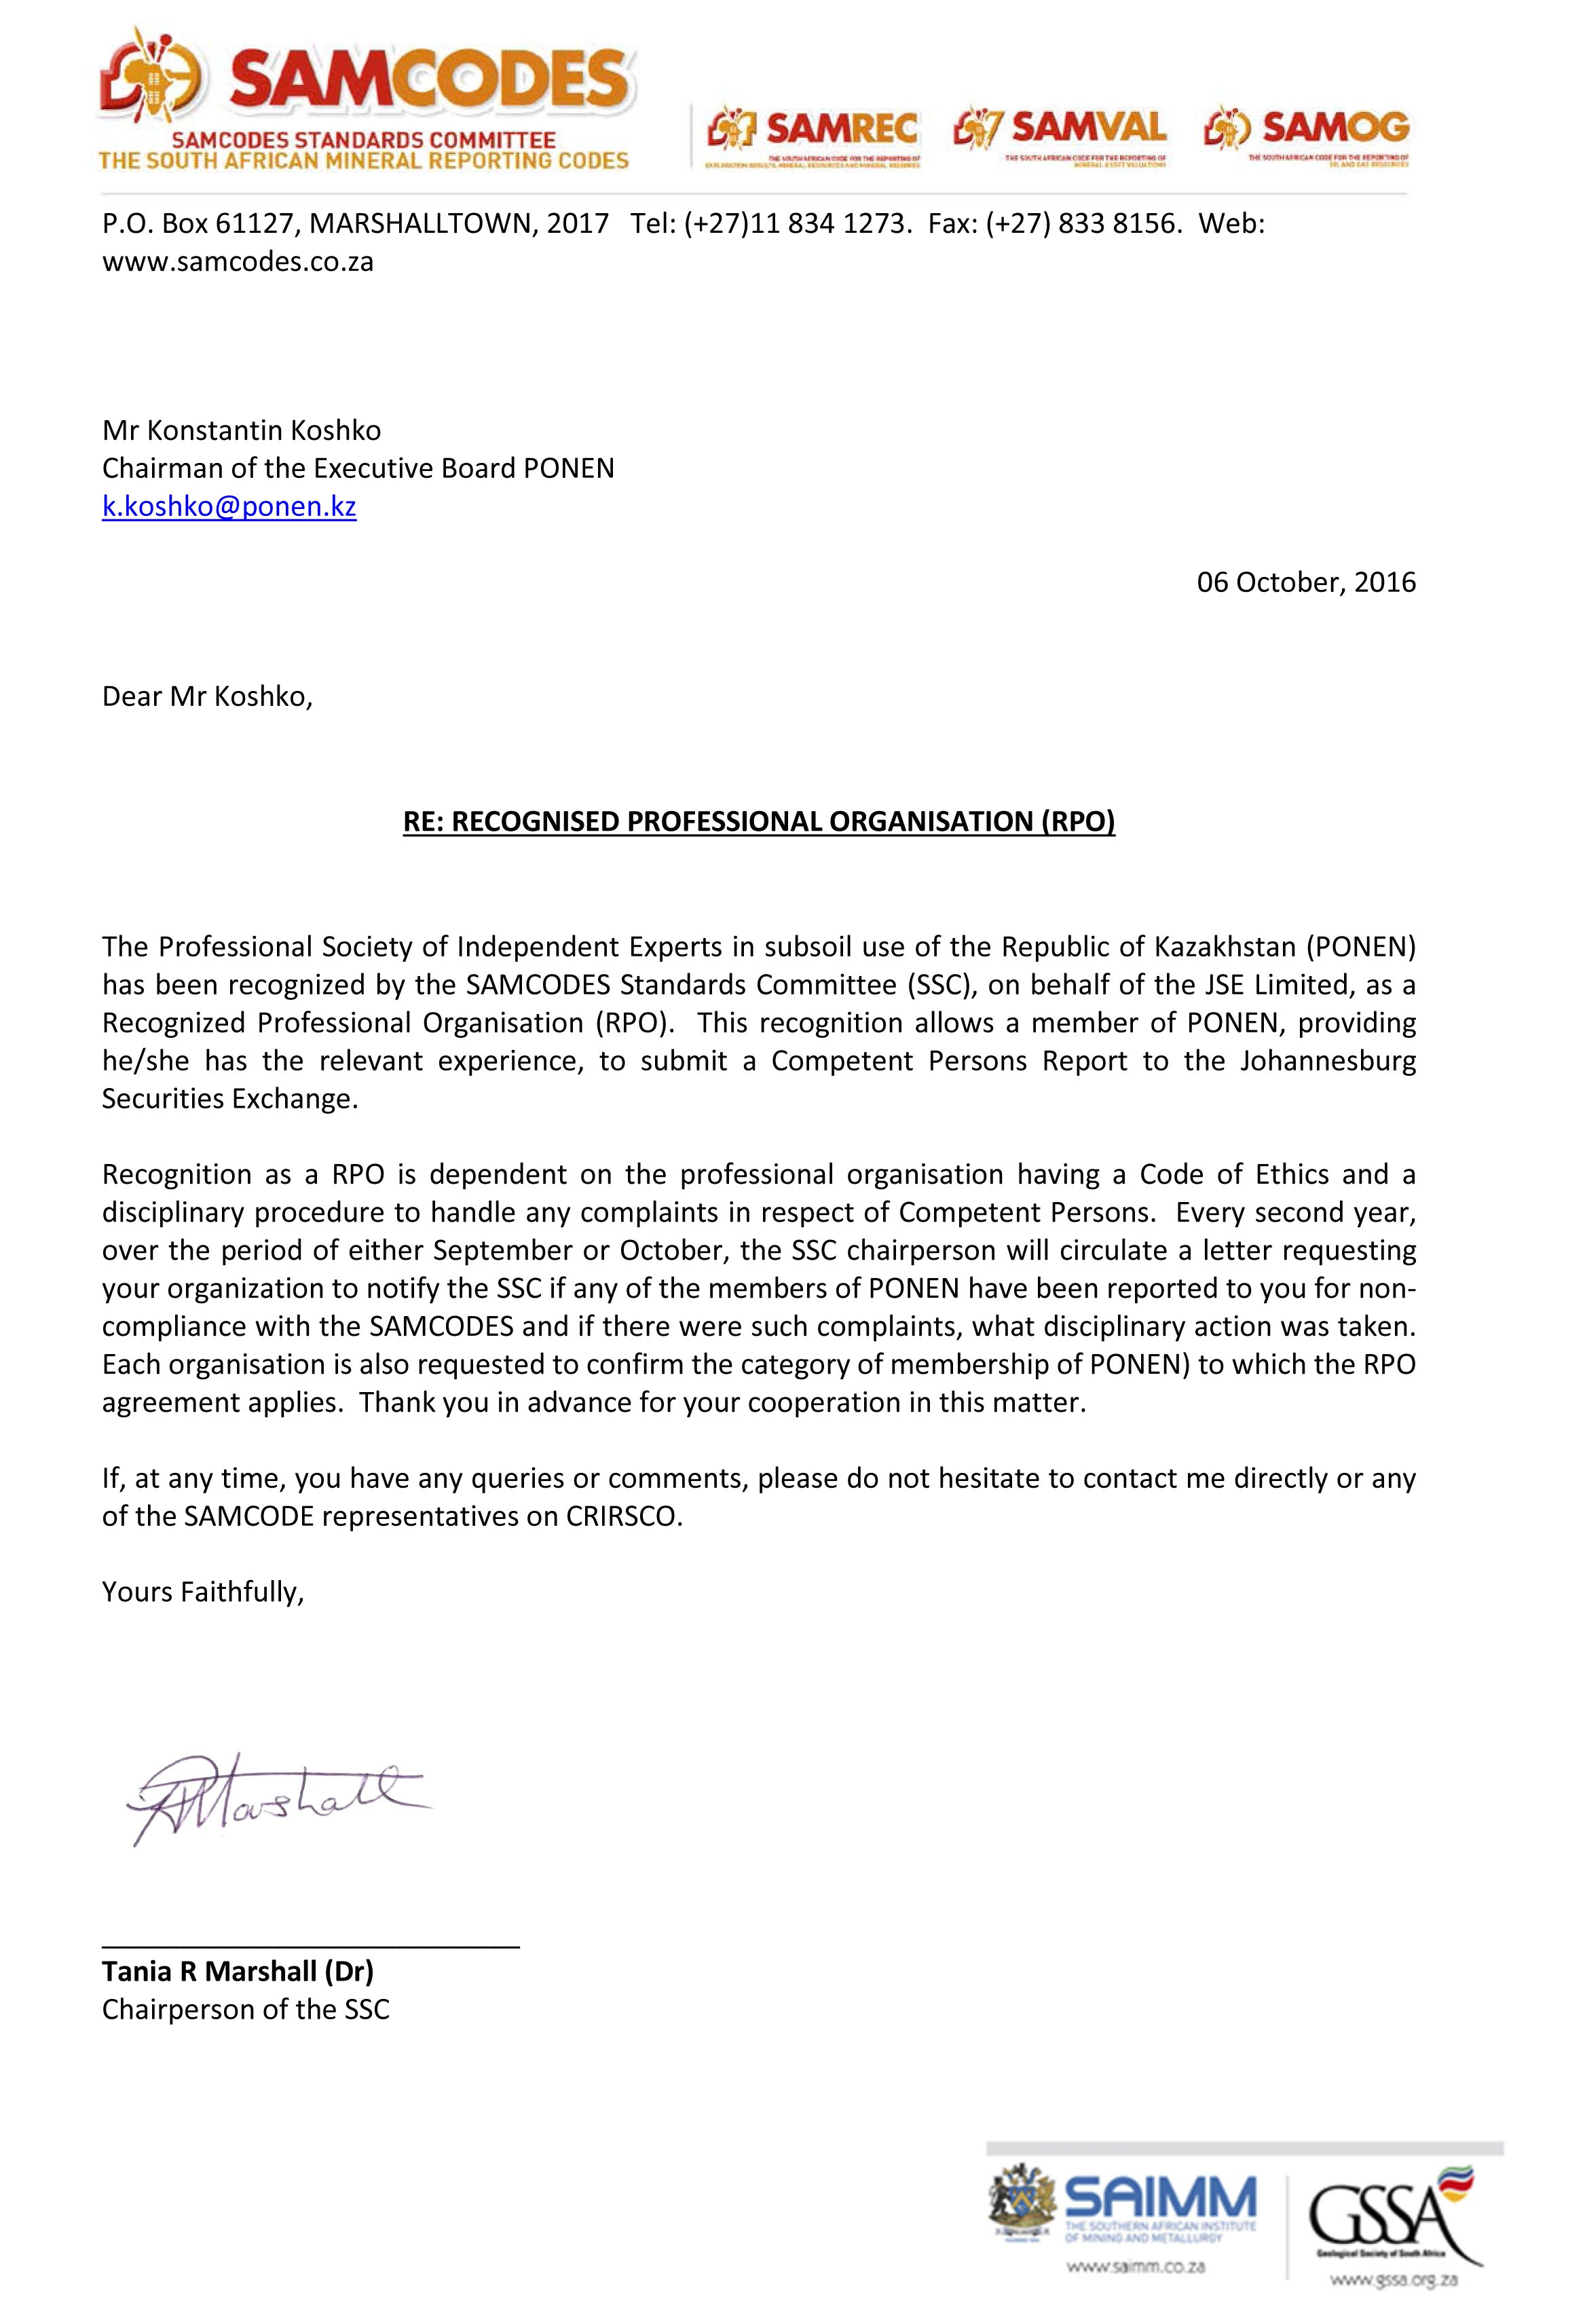 mutual recognition letter from south africa samcodes public 2016 the professional association of independent experts in subsoil use public association ponen was recognized by the samcodes standards committee